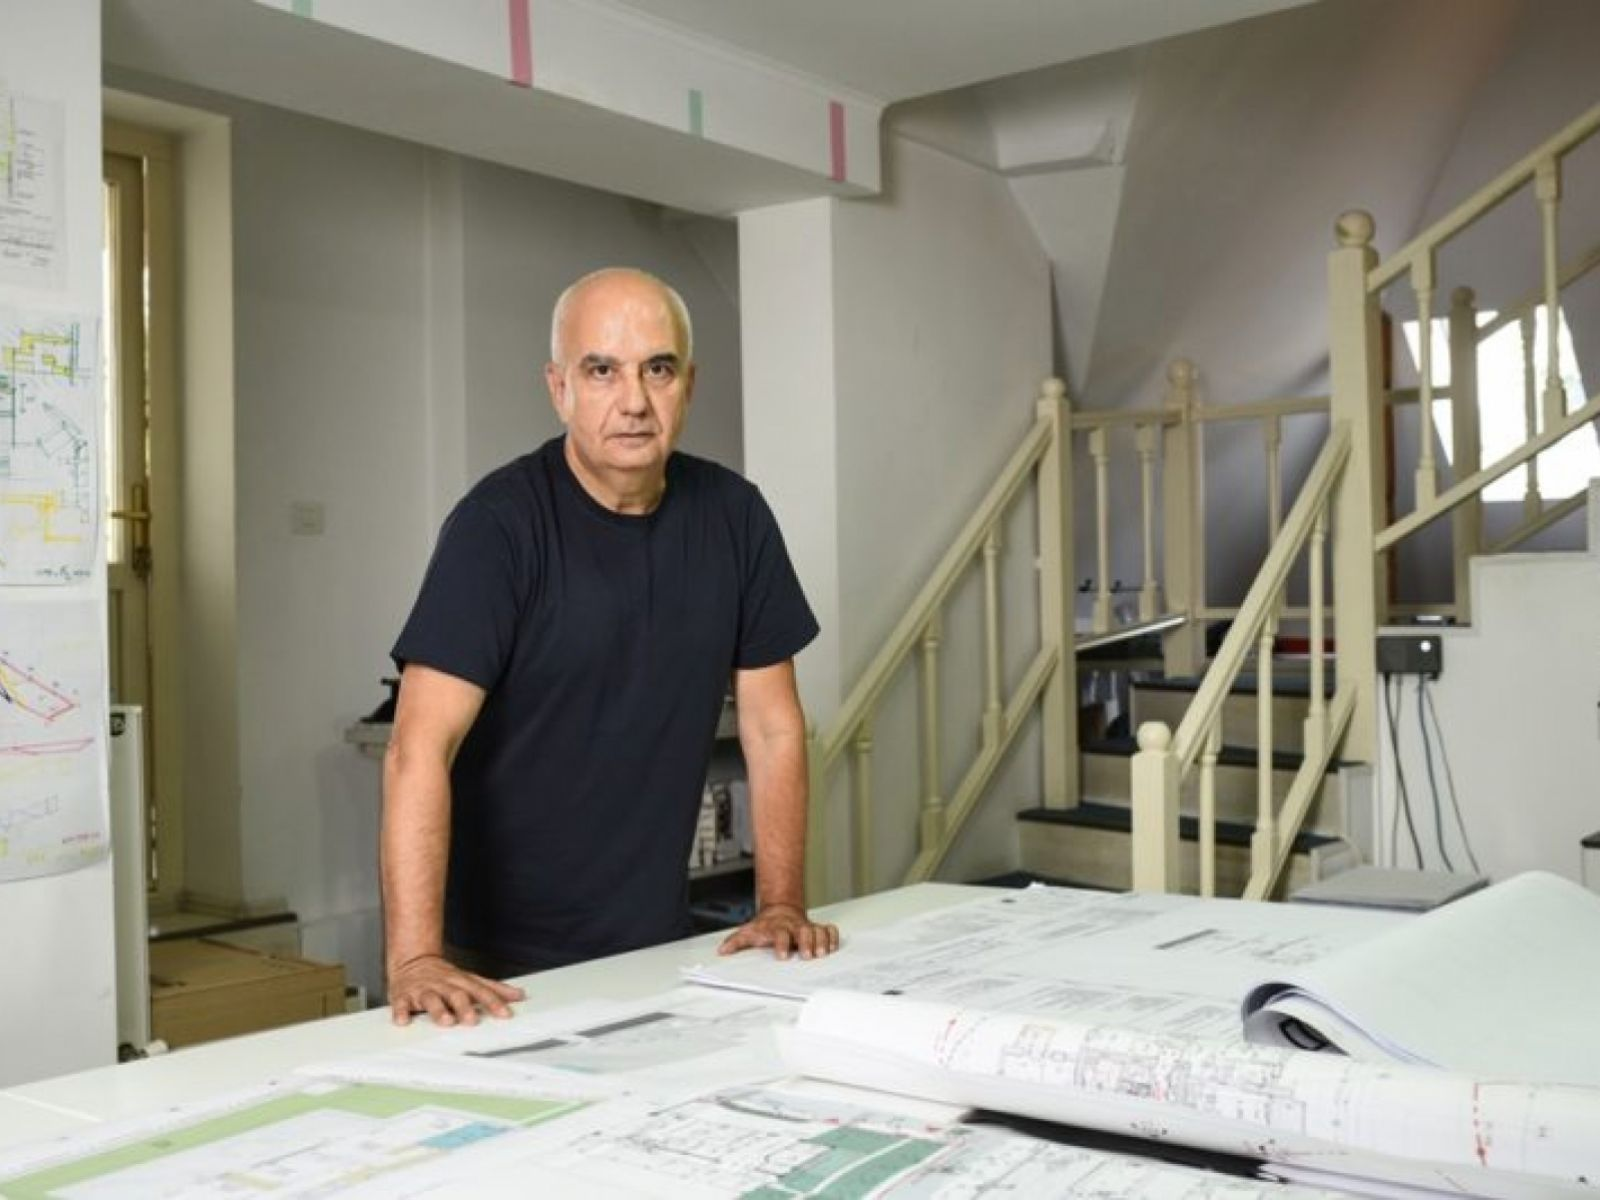 Marius Călin, the architect of the trilogy One Herastrau: Park, Plaza and Towers